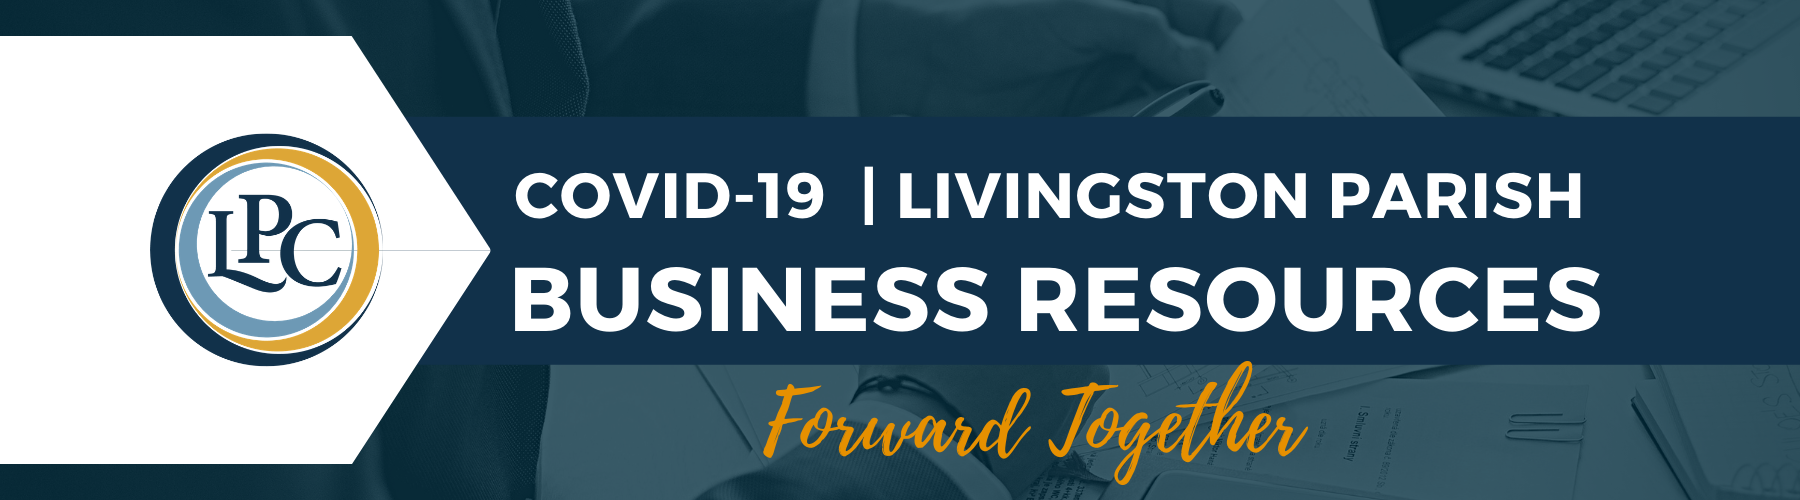 Covid 19 Business Resources 1800 (1)